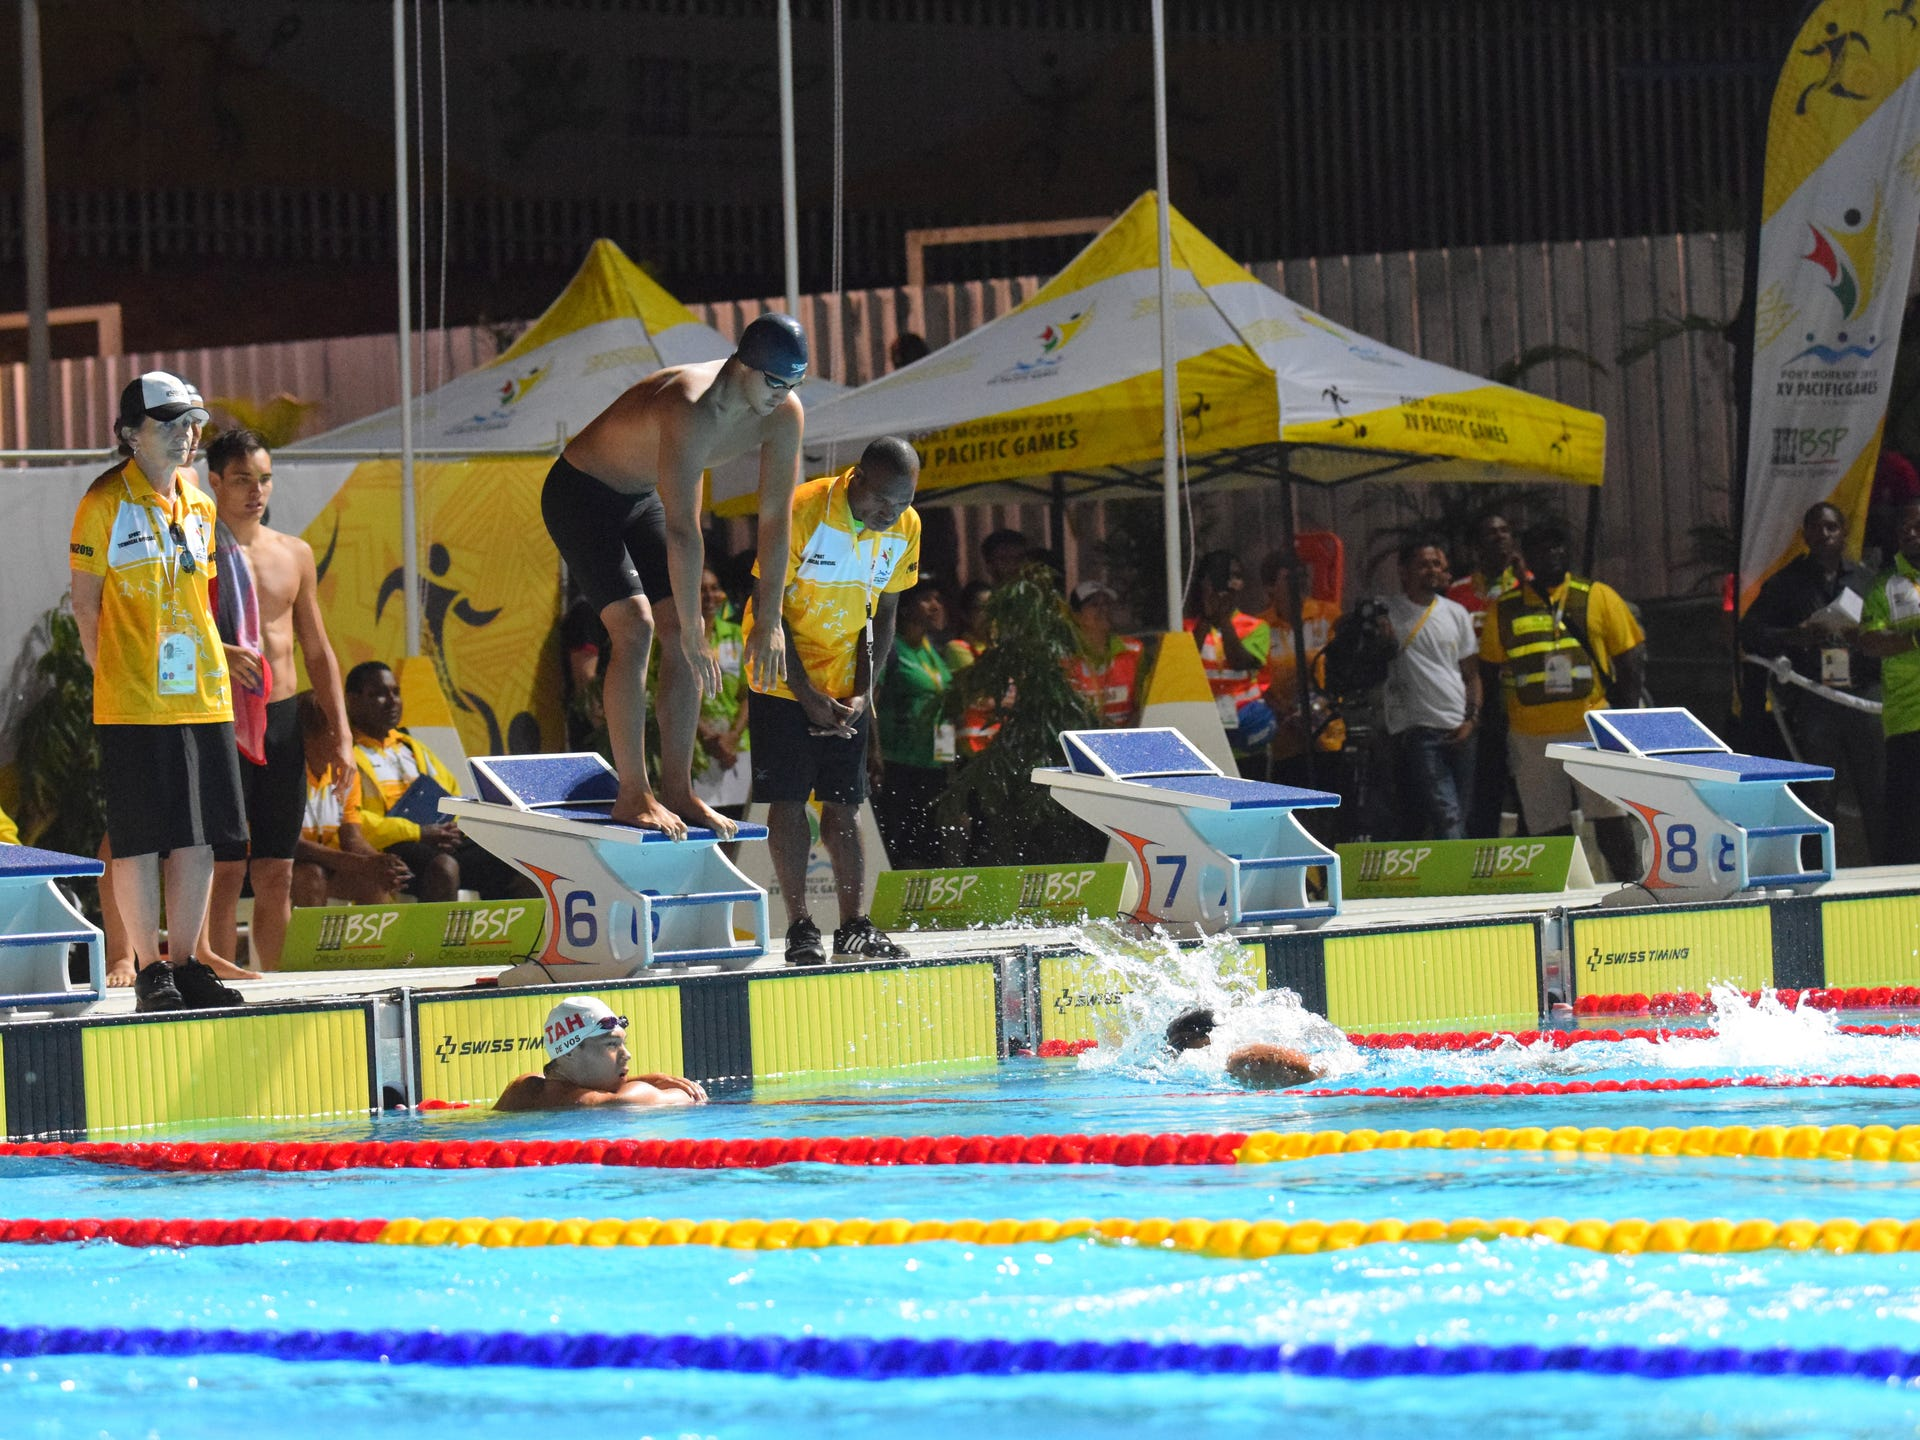 Pacific Games swimming July 7